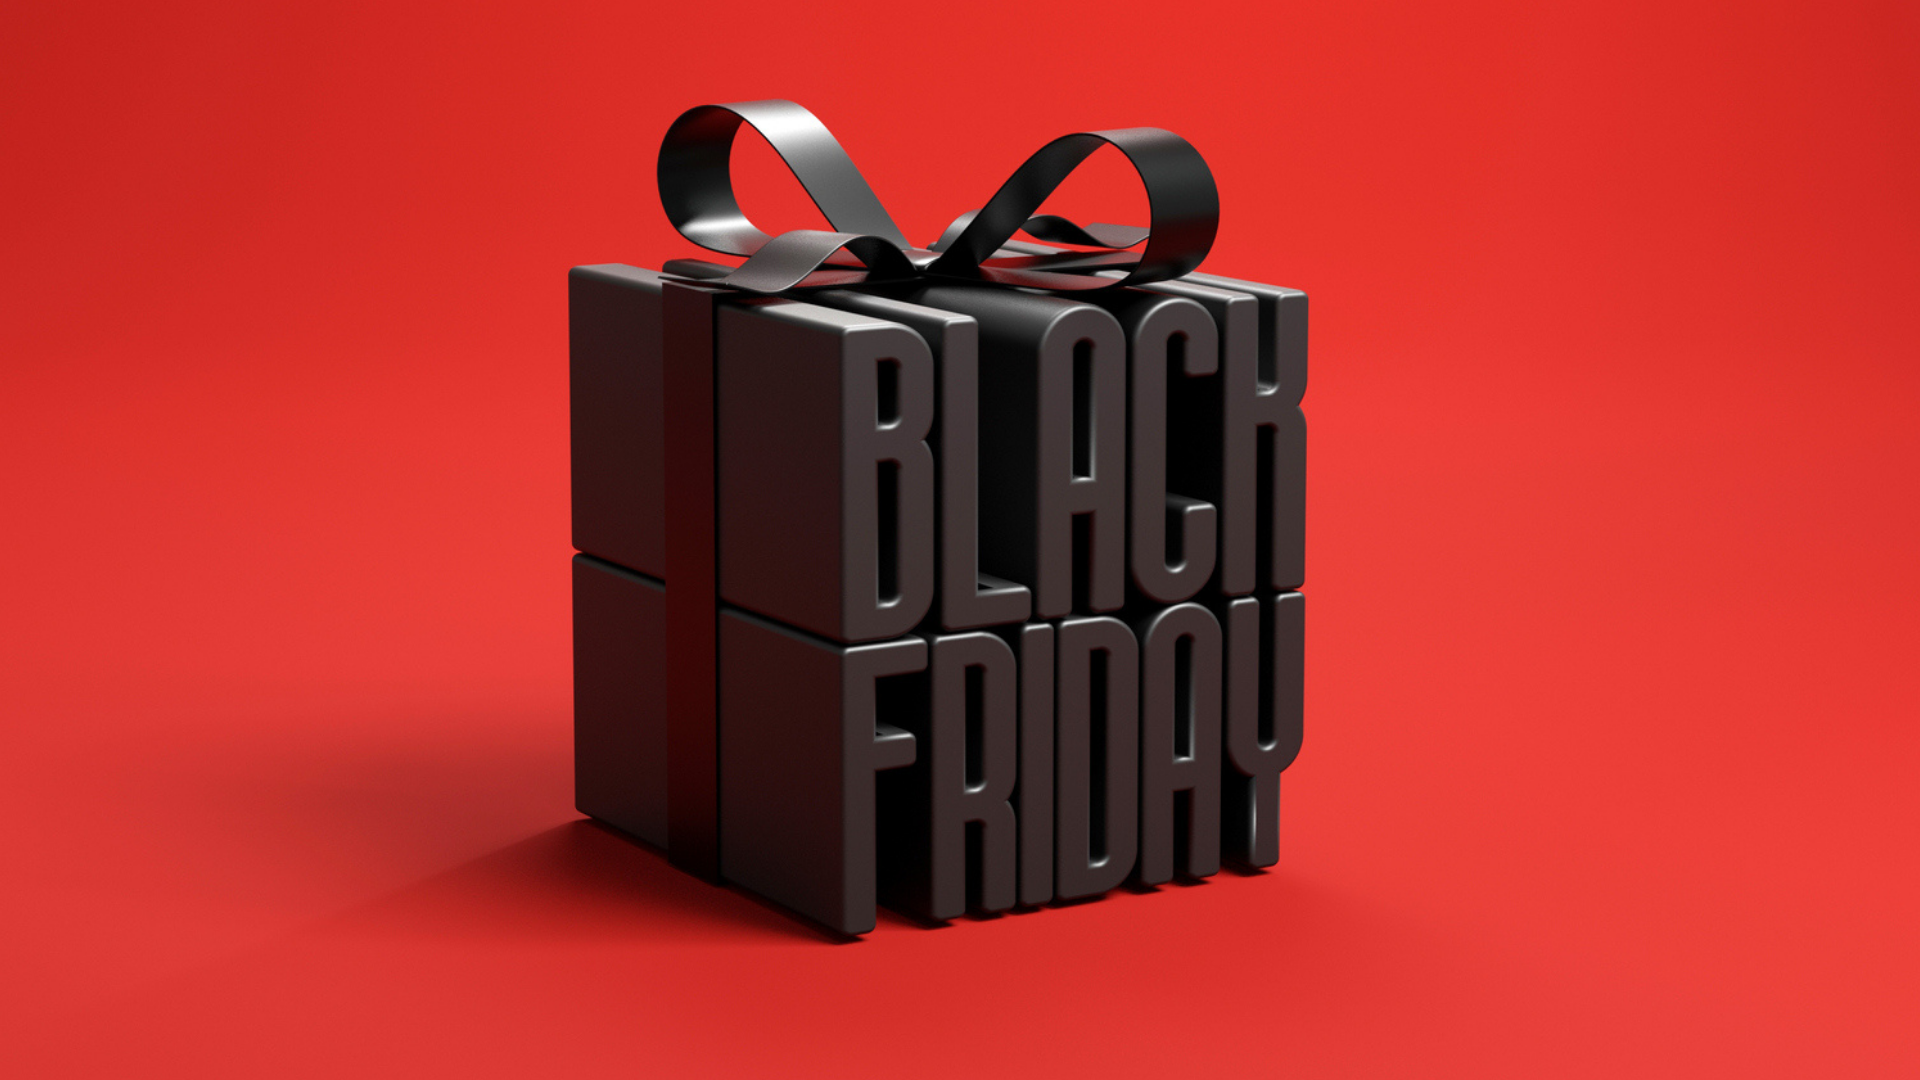 Black Friday 2021 deals are here—shop the best early sales at Amazon, Walmart and more